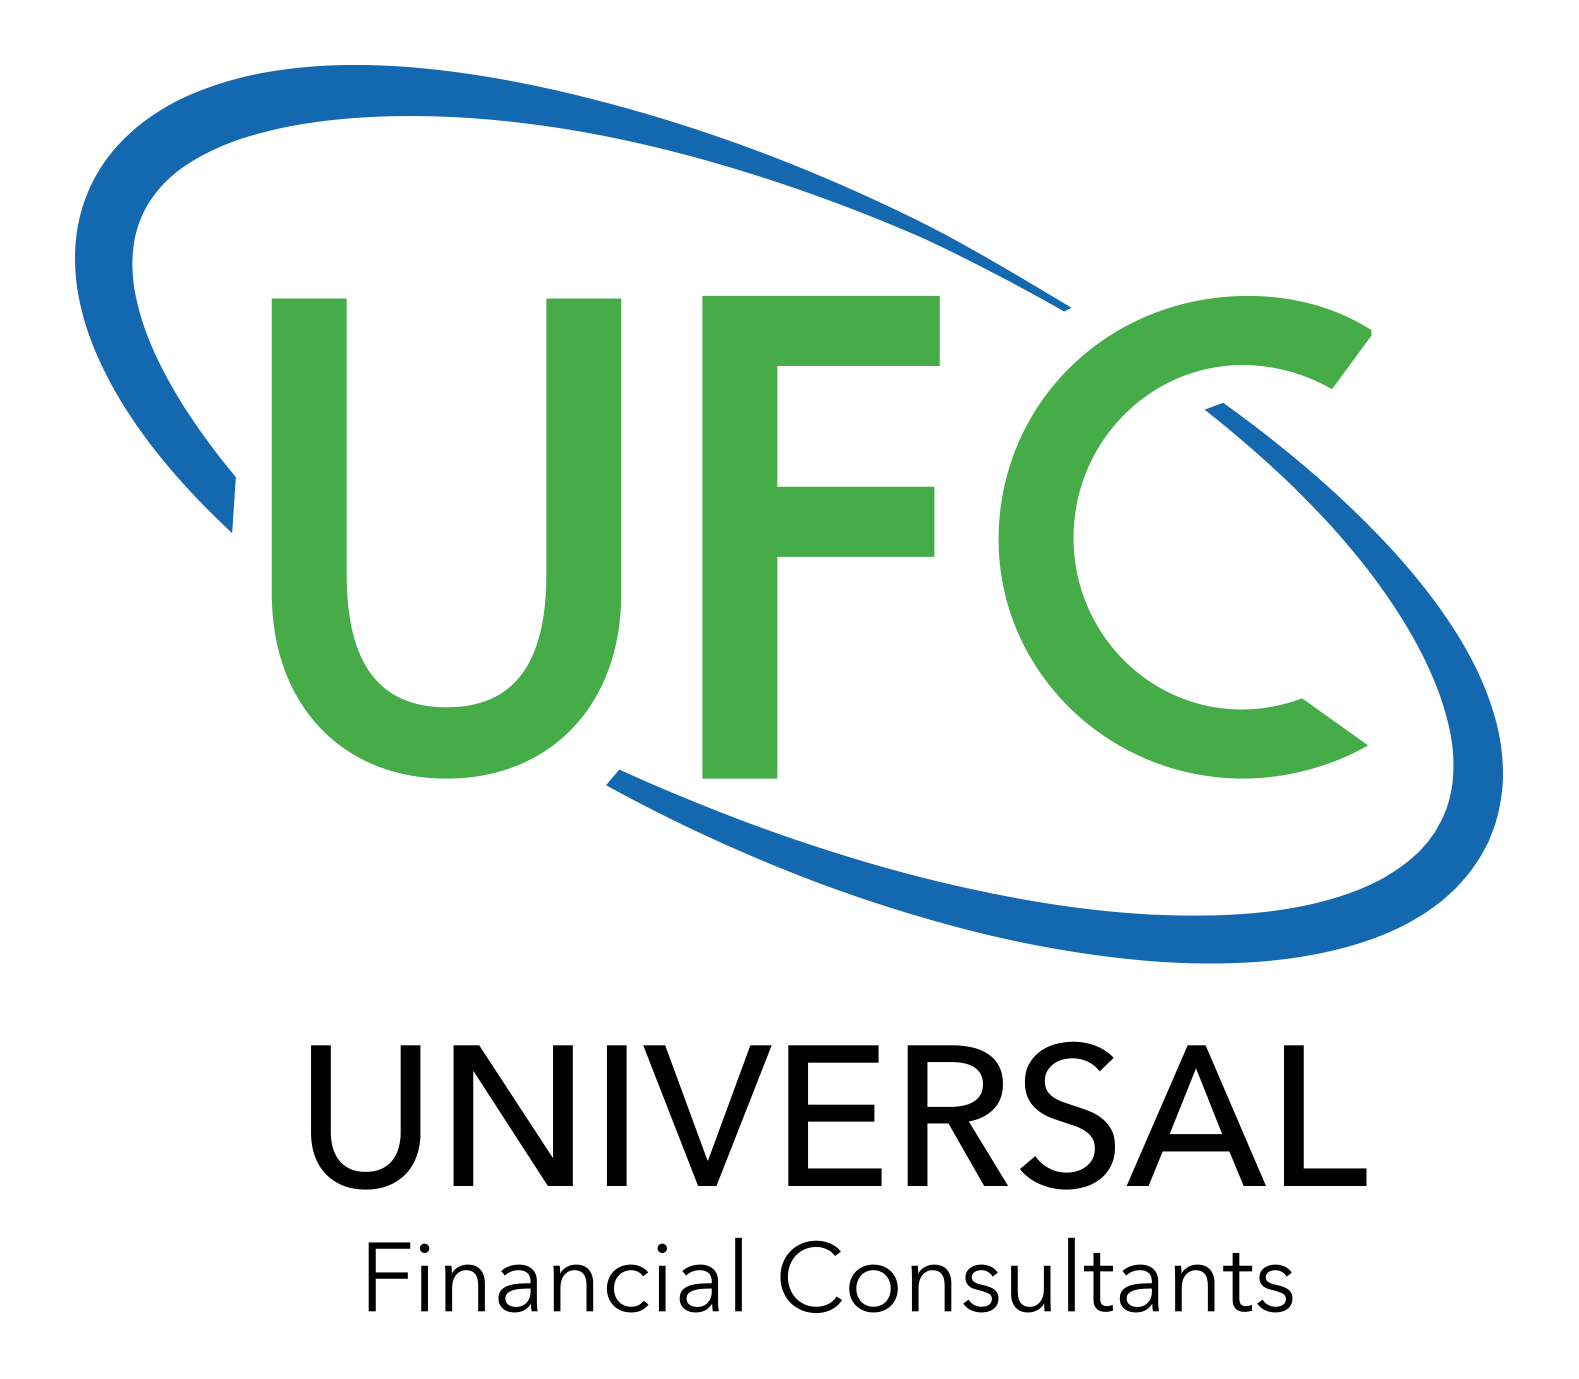 UFC for Legal and Accounting Logo